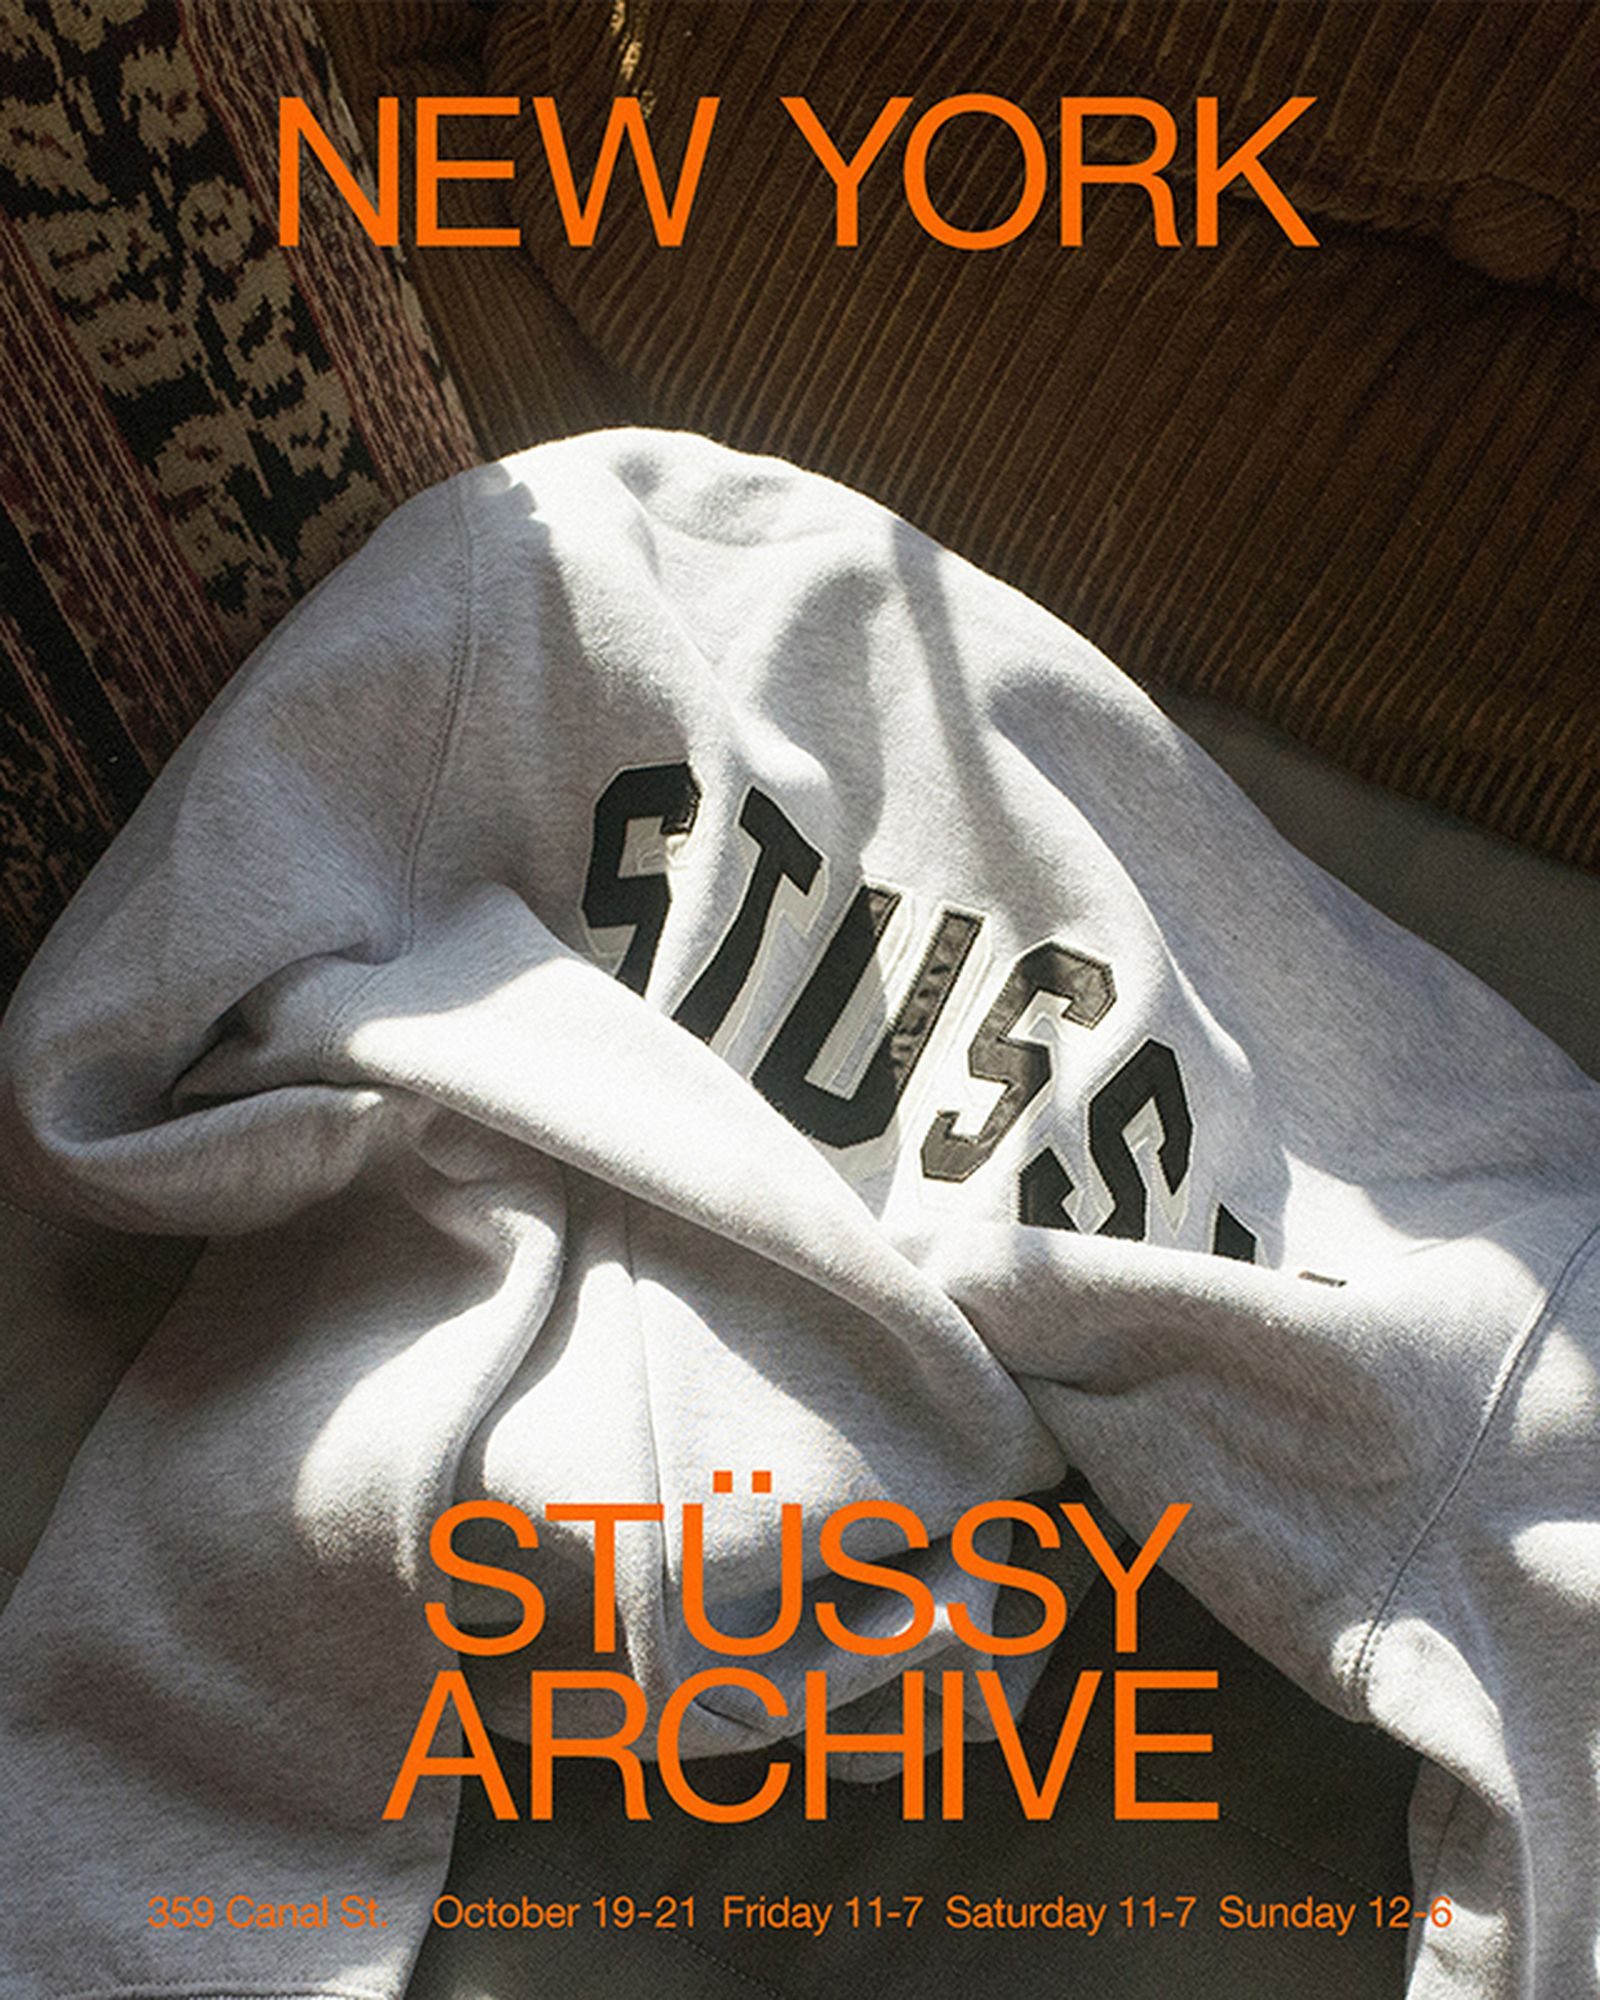 stussy pop up sale new york Stüssy